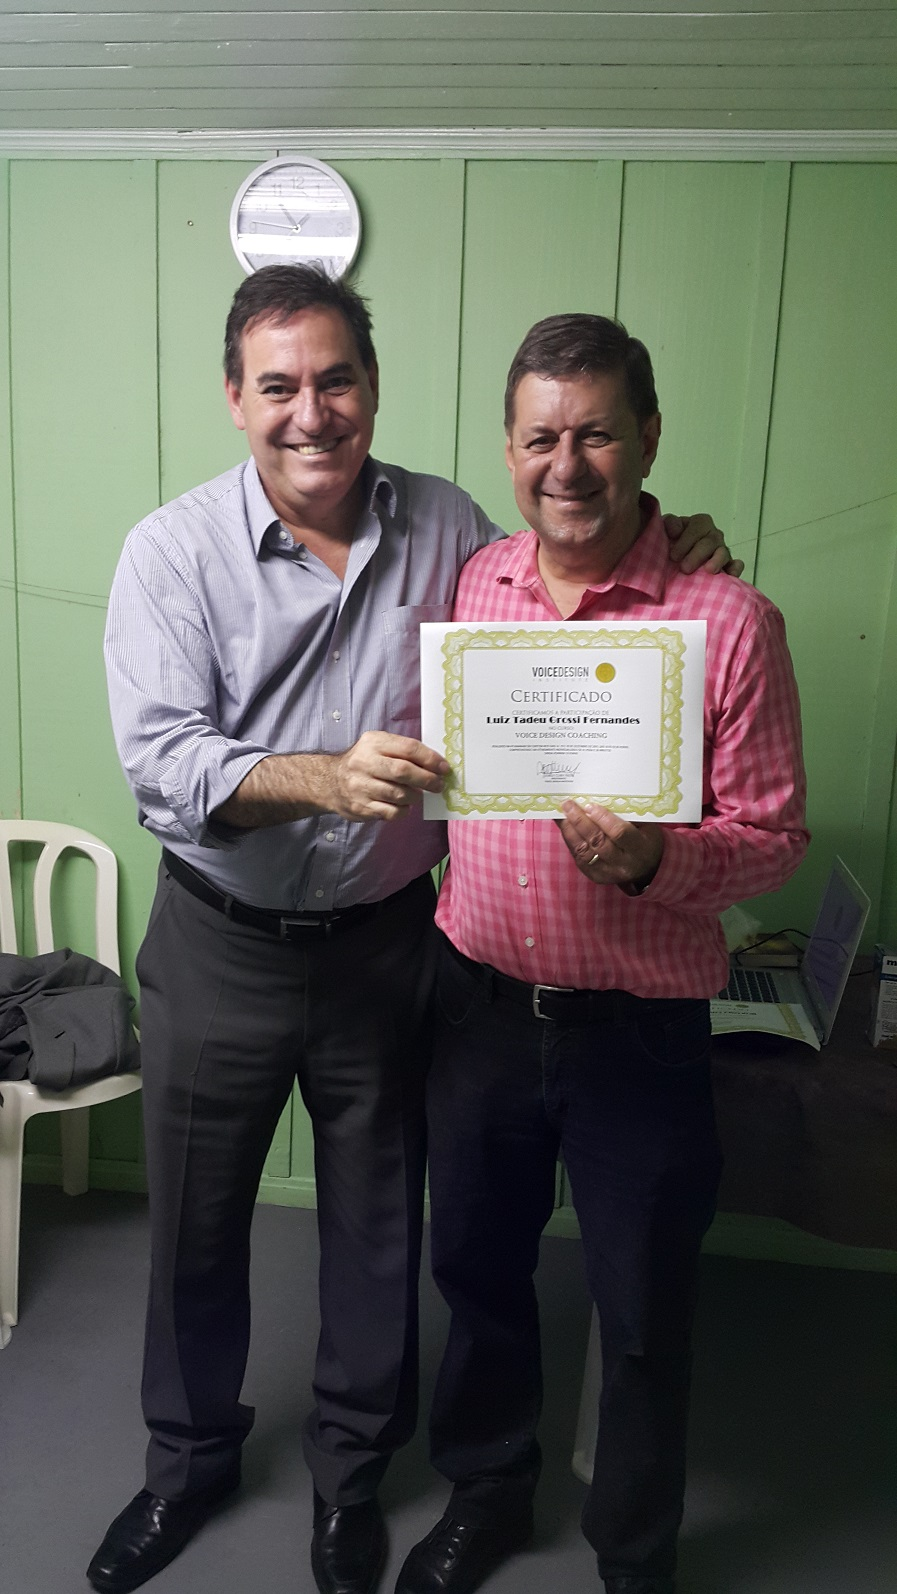 Entrega de Certificado do Curso Voice Design Coaching – Turma 02